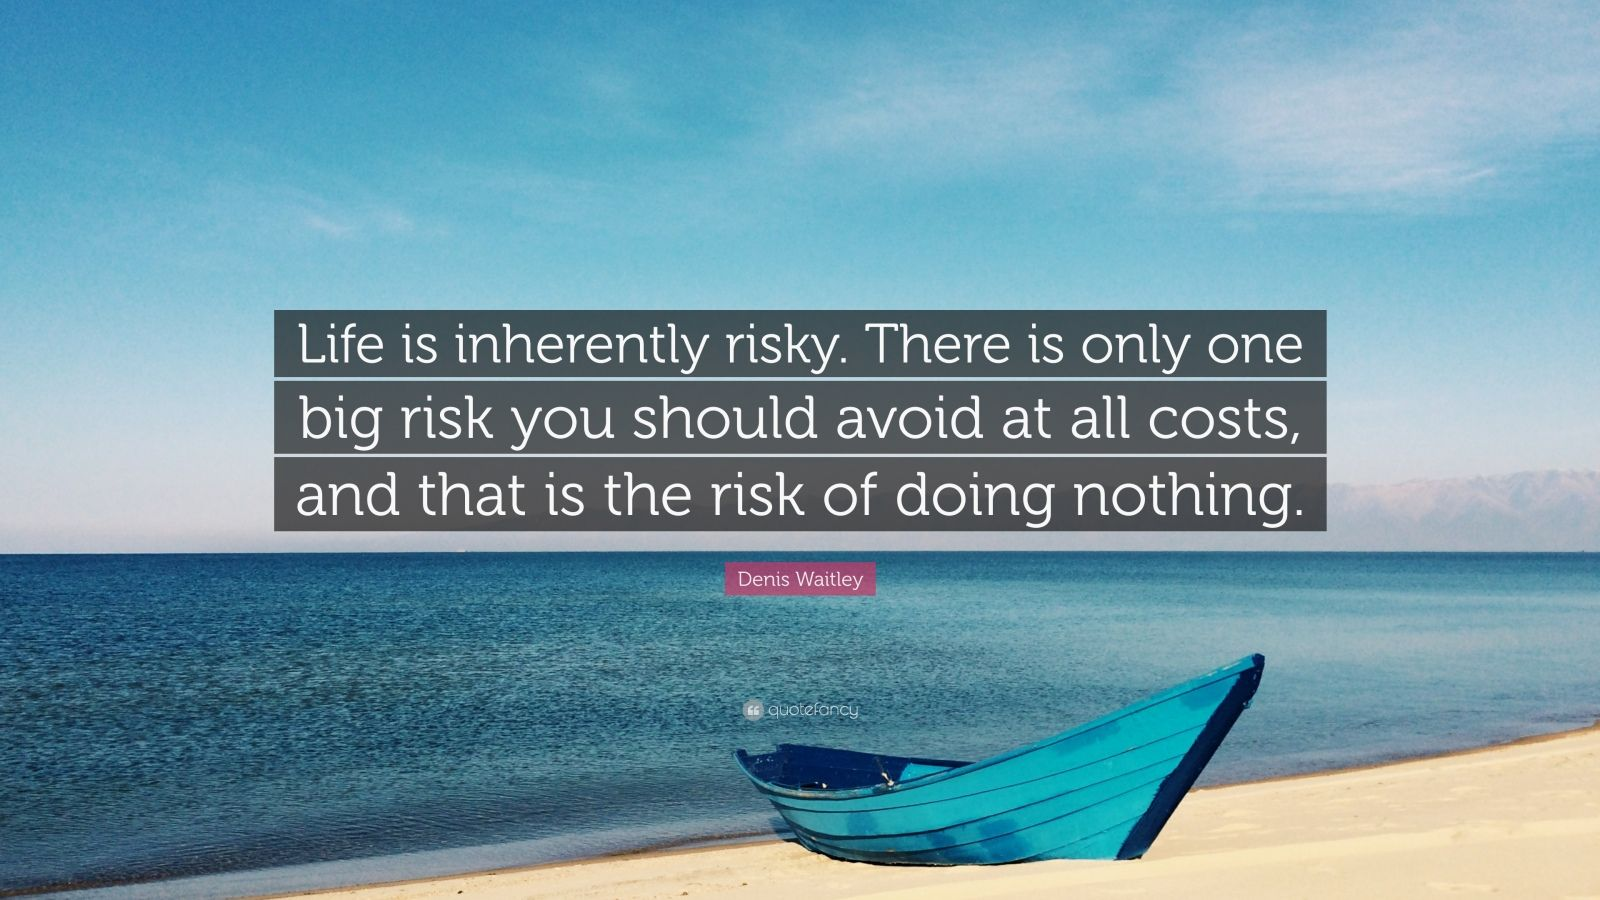 Life is inherently risky. There is only one big risk you should avoid at all costs, and that is the risk of doing nothing